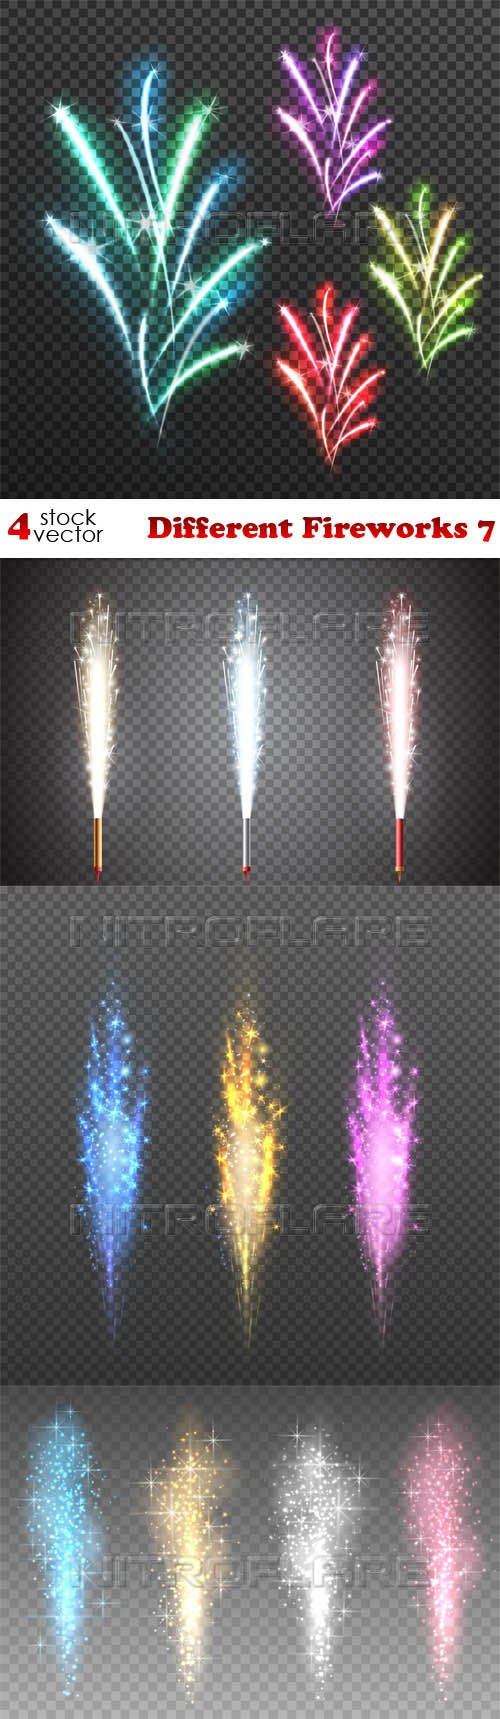 Vectors - Different Fireworks 7